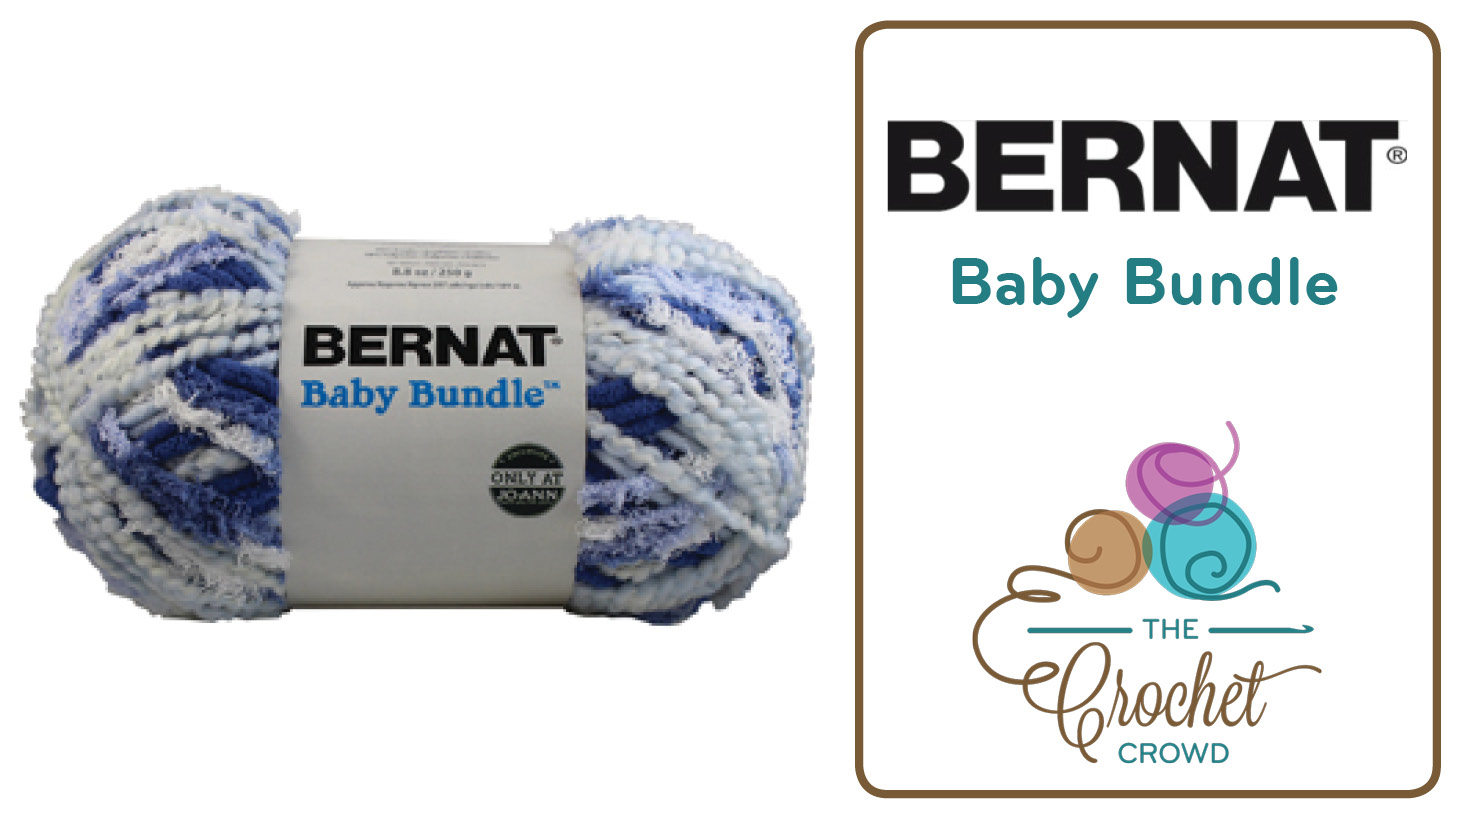 What To Do With Bernat Baby Bundle Yarn - The Crochet Crowd®